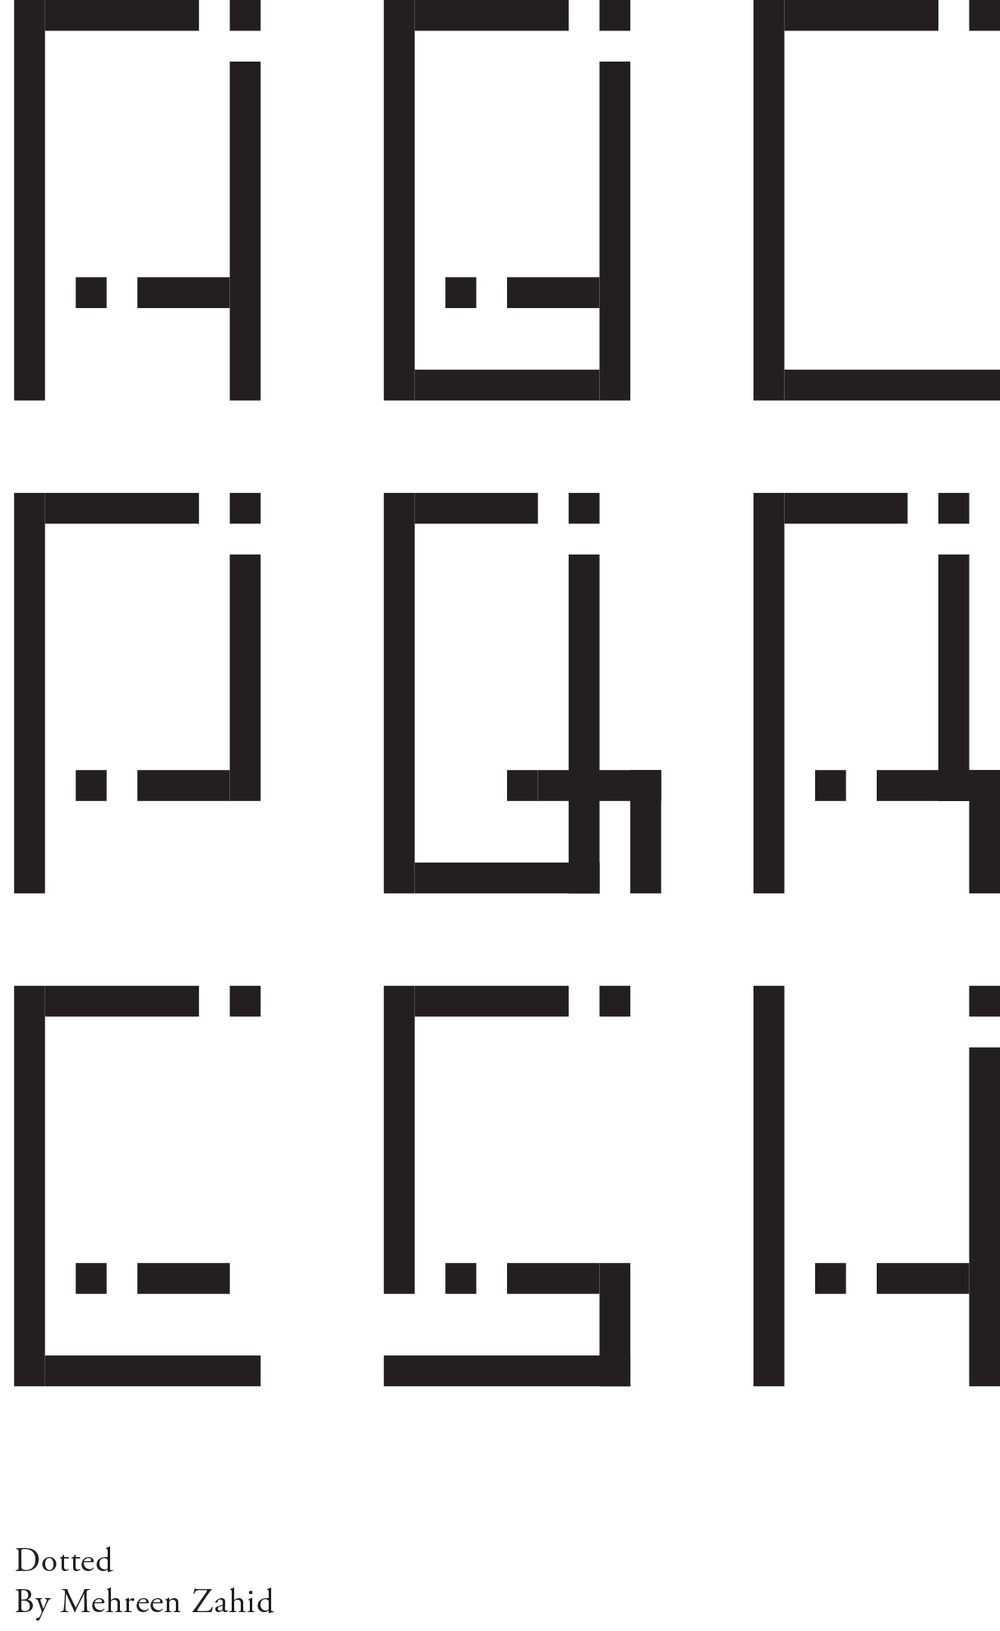 Mehreen Zahid - Dotted - Bitmap Font Letter Size.jpg